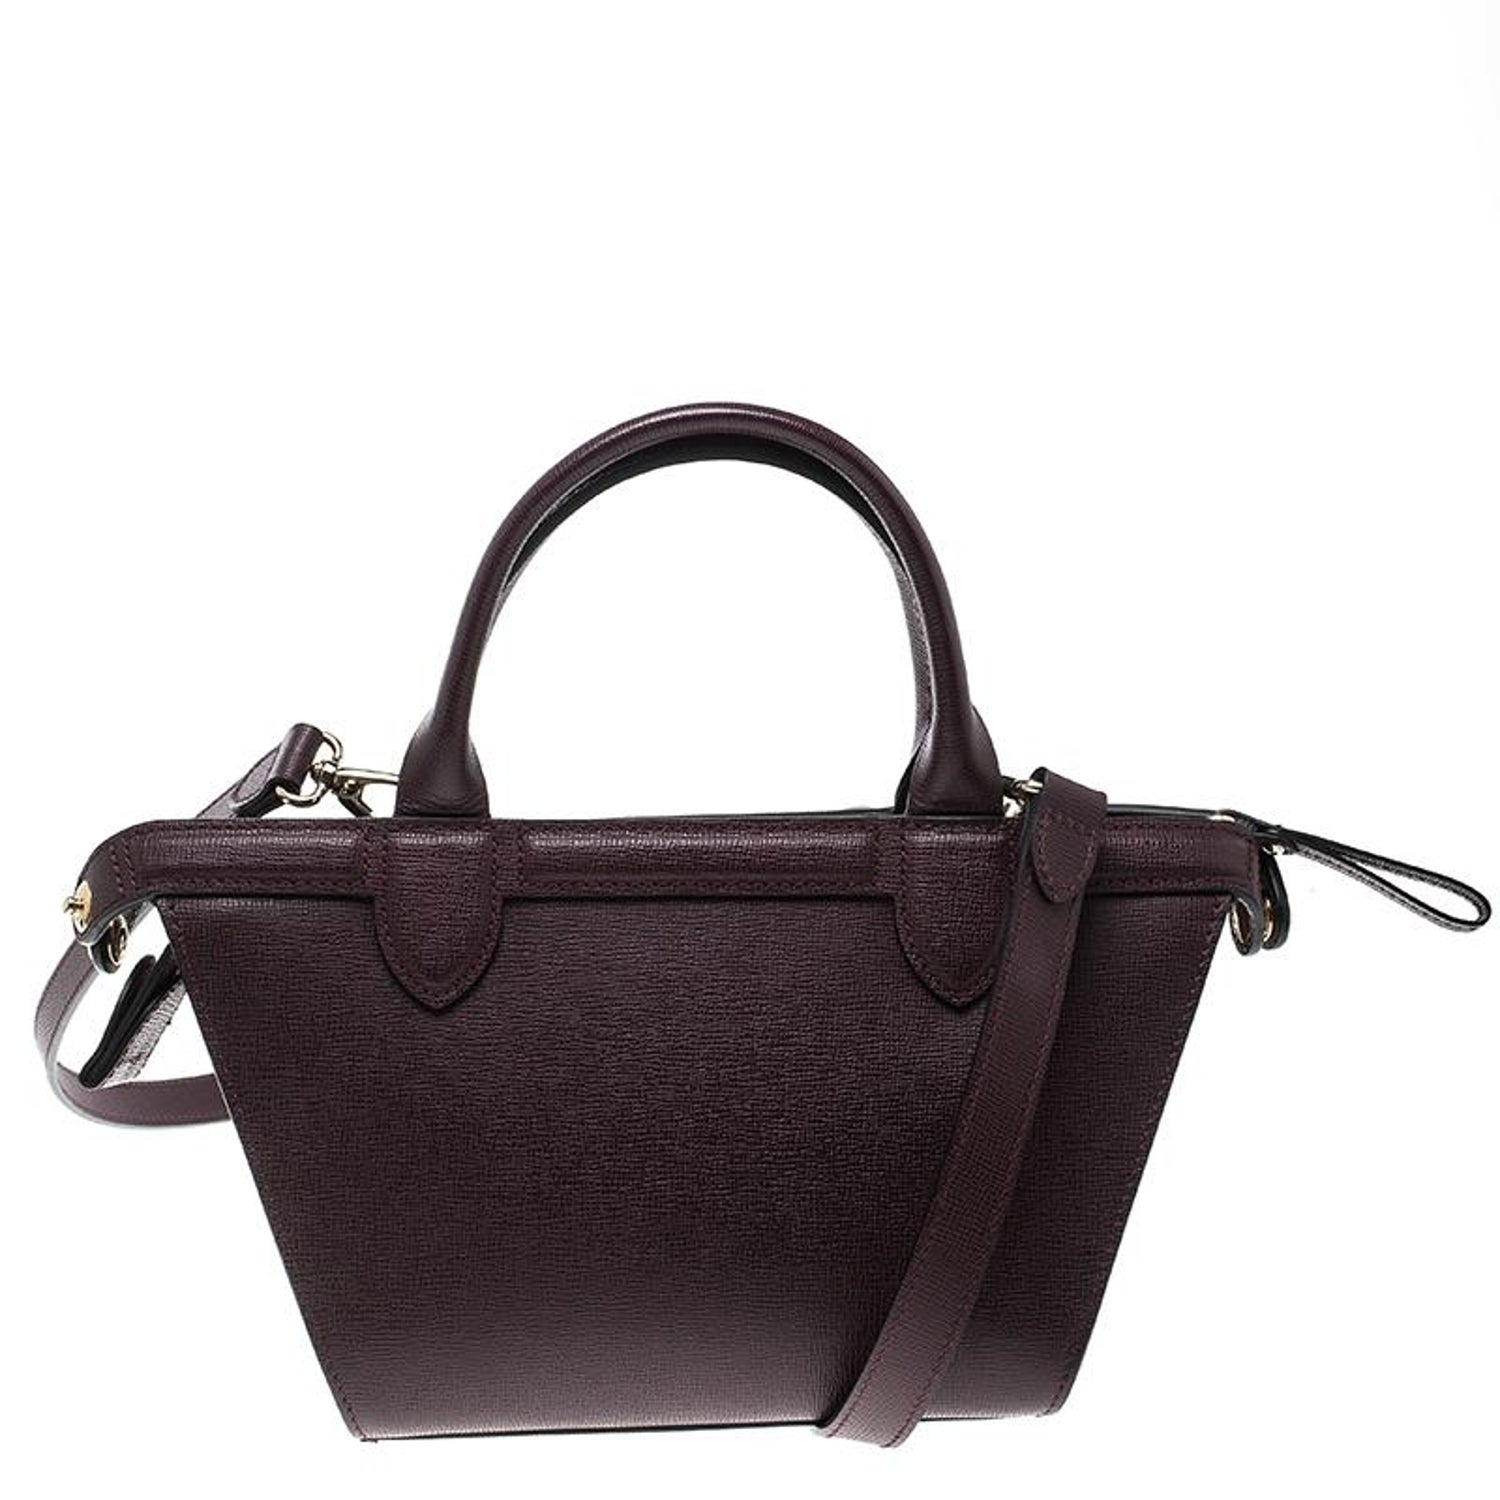 7739488d493 Longchamp Burgundy Leather Small Le Pliage Heritage Tote at 1stdibs